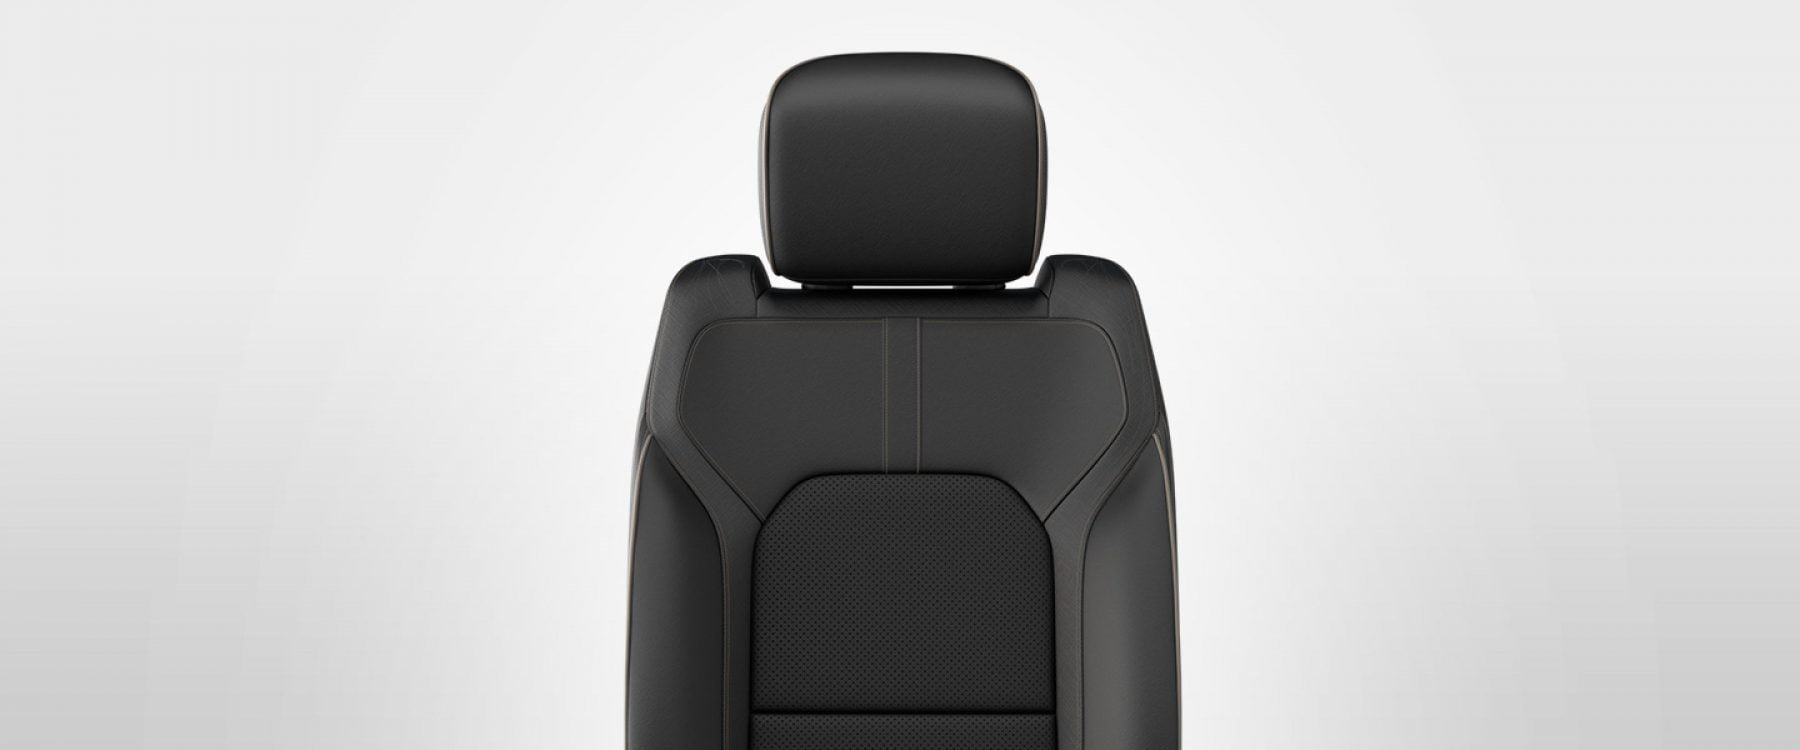 2019 Ram 1500 Interior Seats Limited Natura plus black